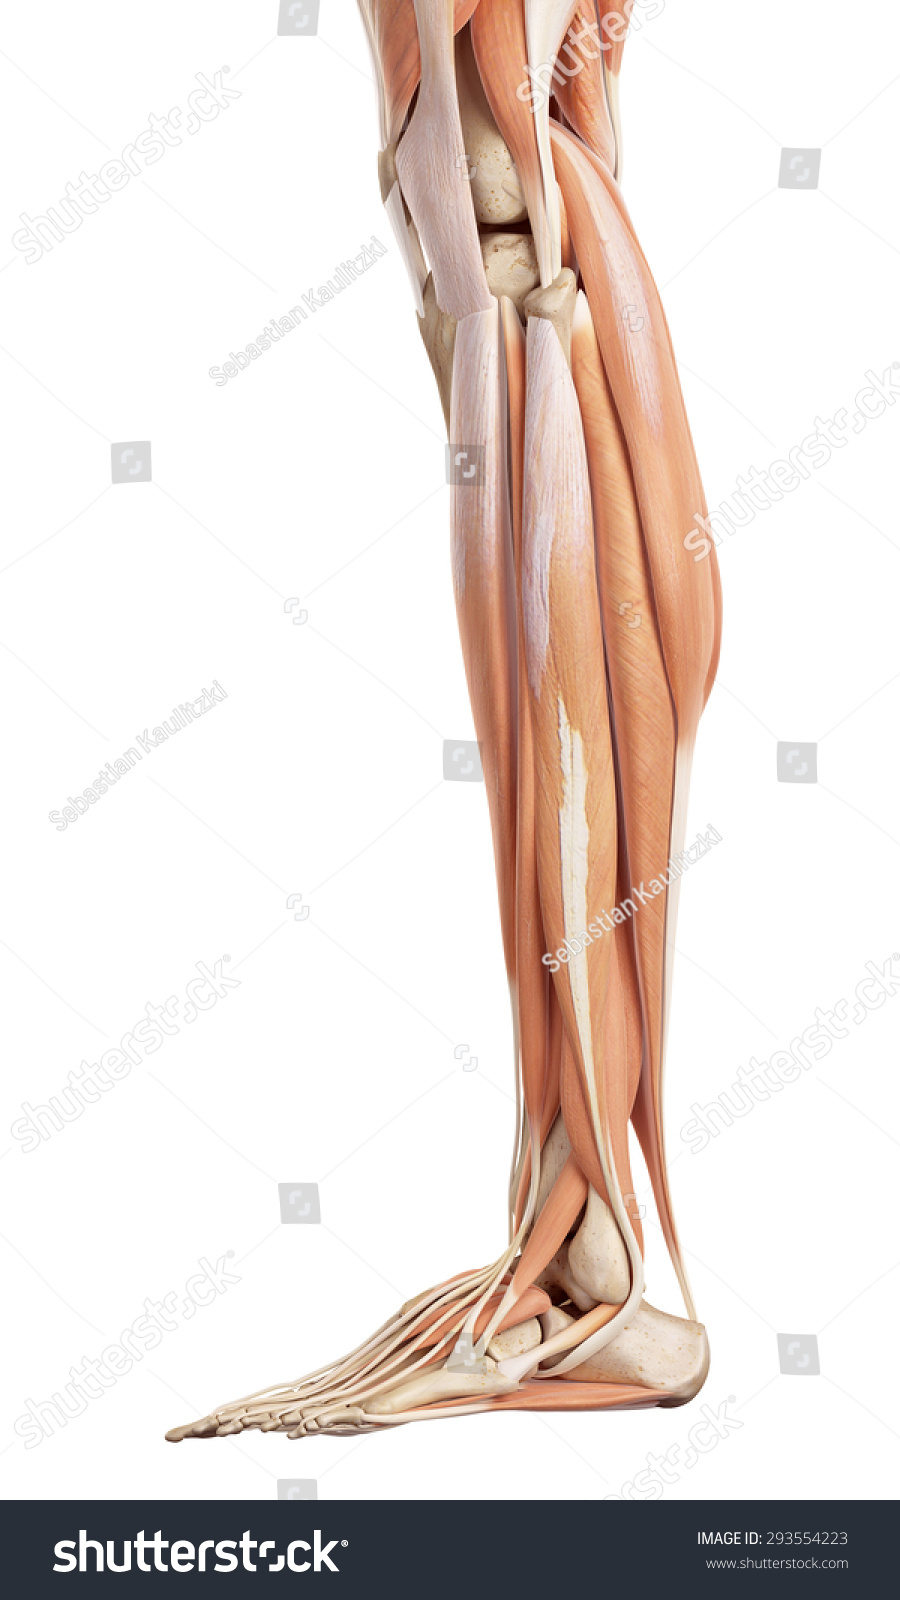 Medical Accurate Illustration Lower Leg Muscles Stock Illustration